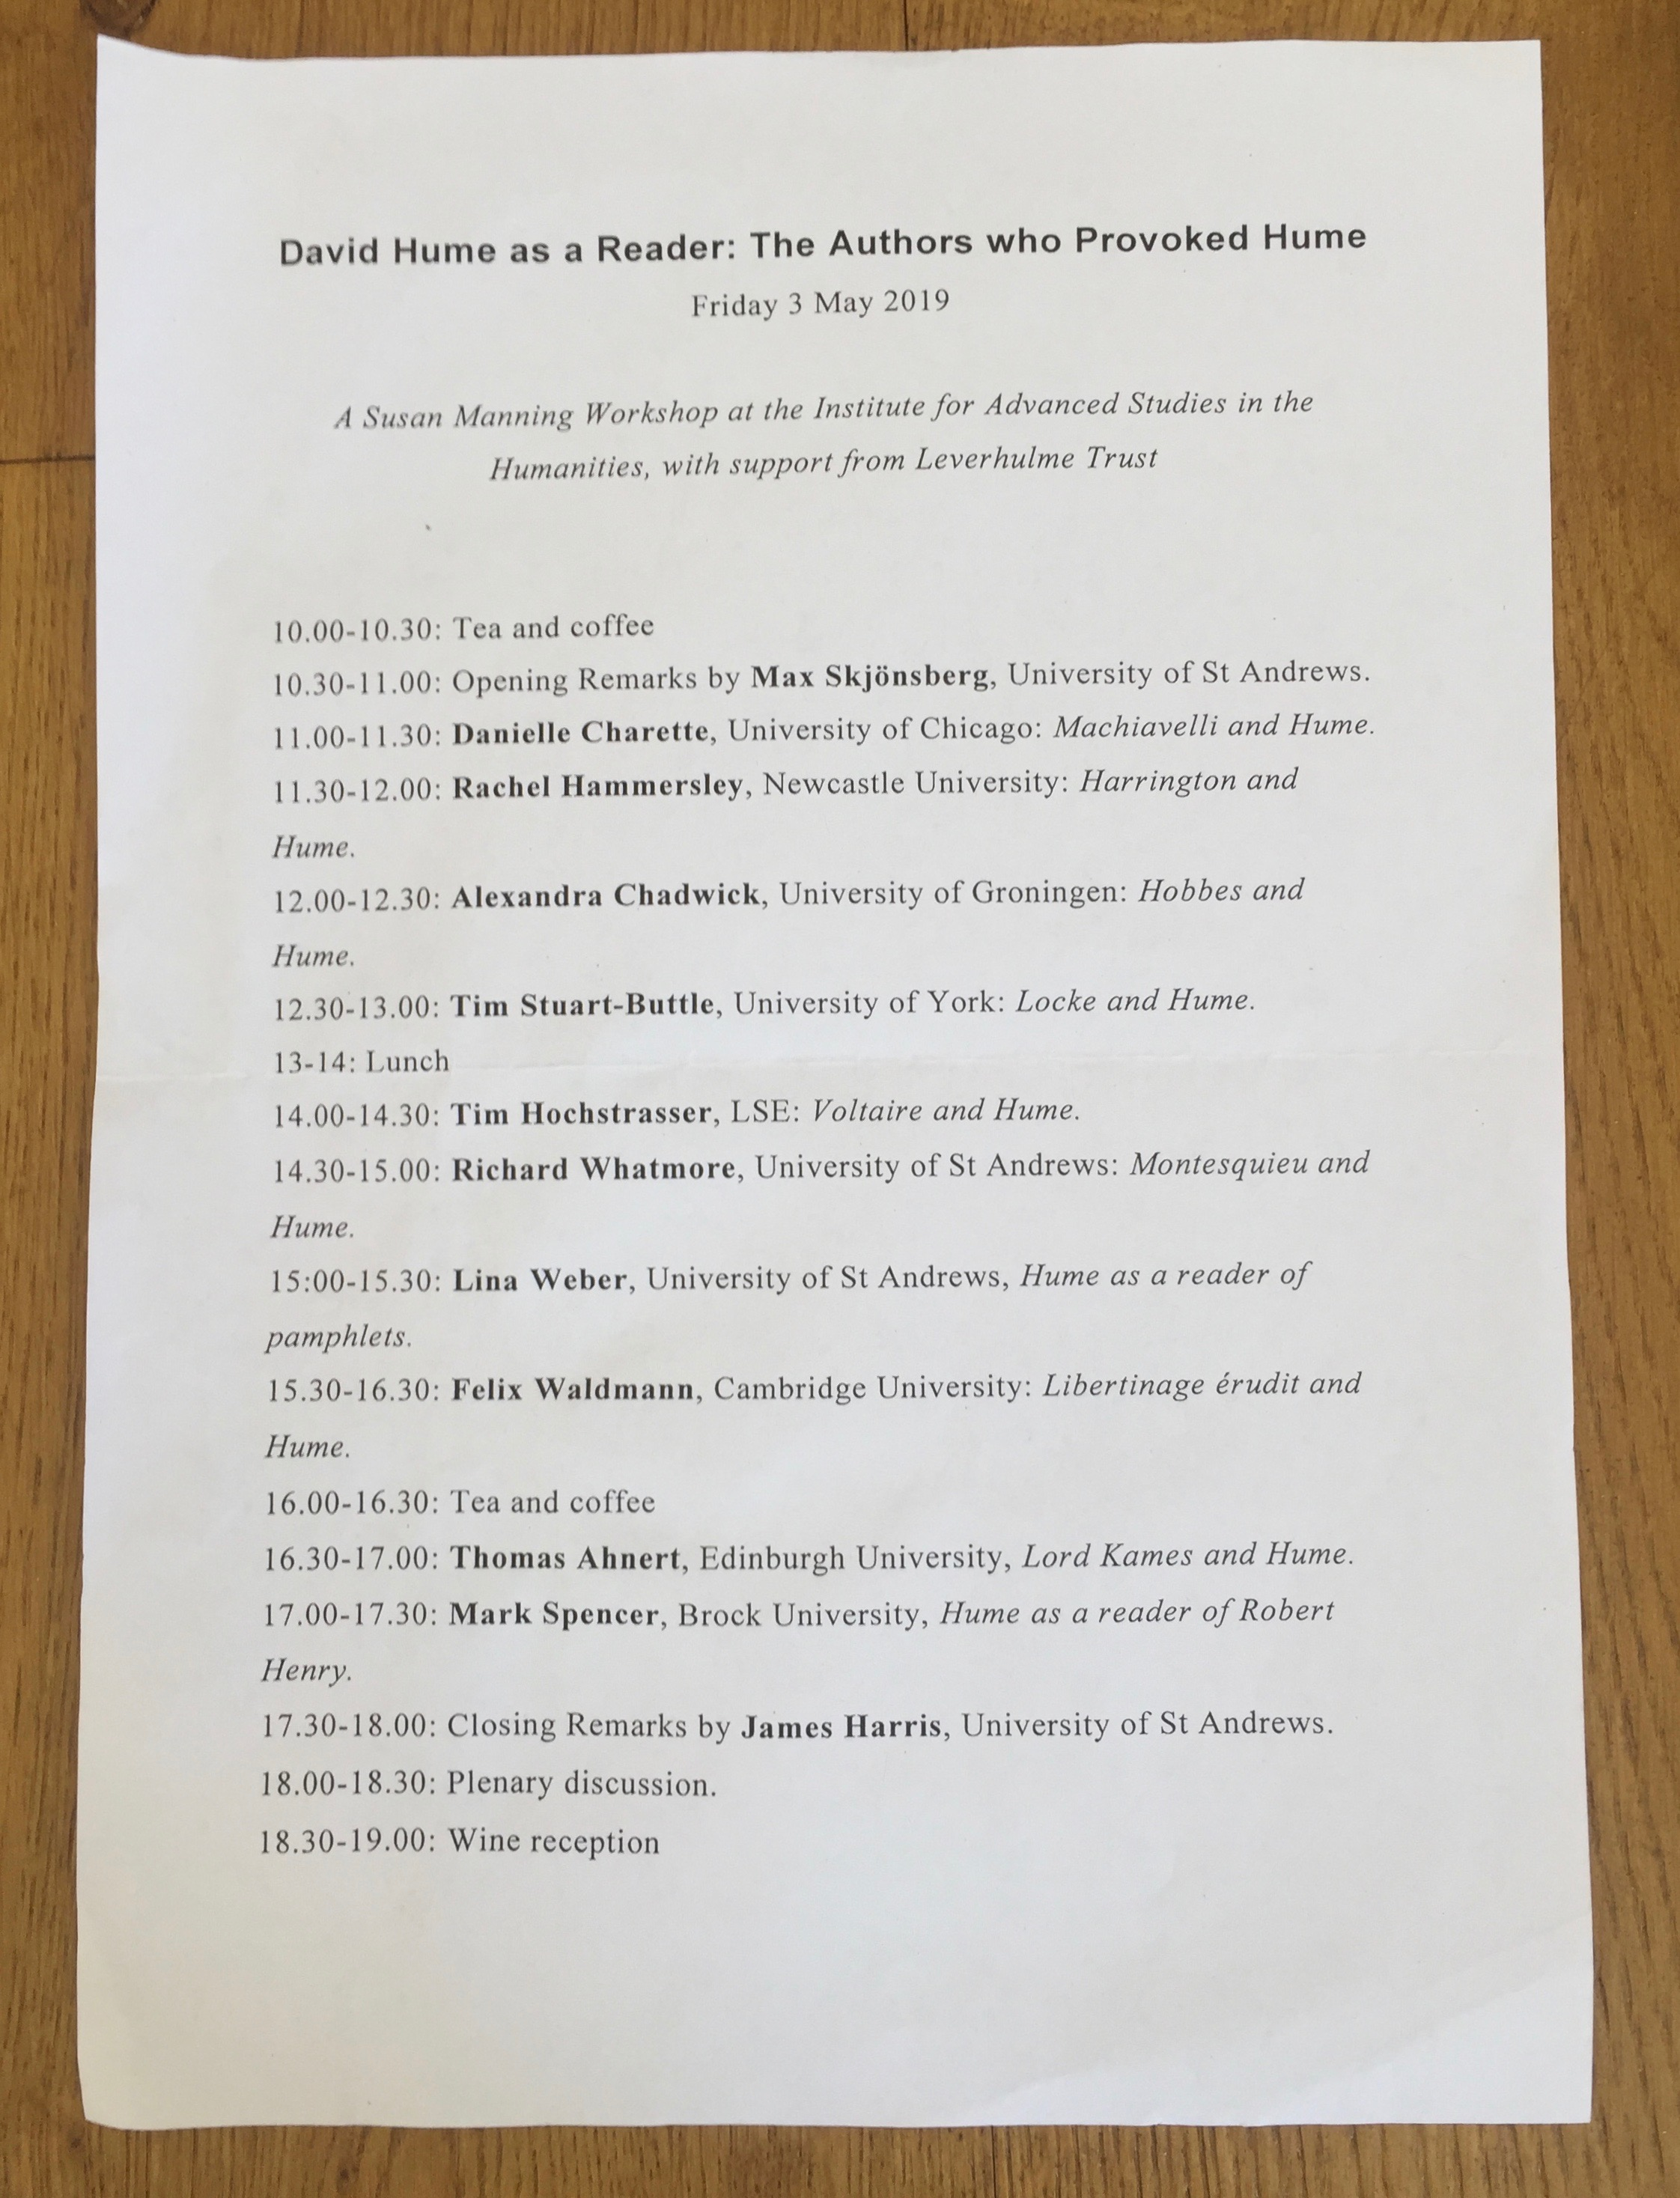 Programme for the workshop 'David Hume as Reader: The Authors who Provoked Hume', 03.05.19.